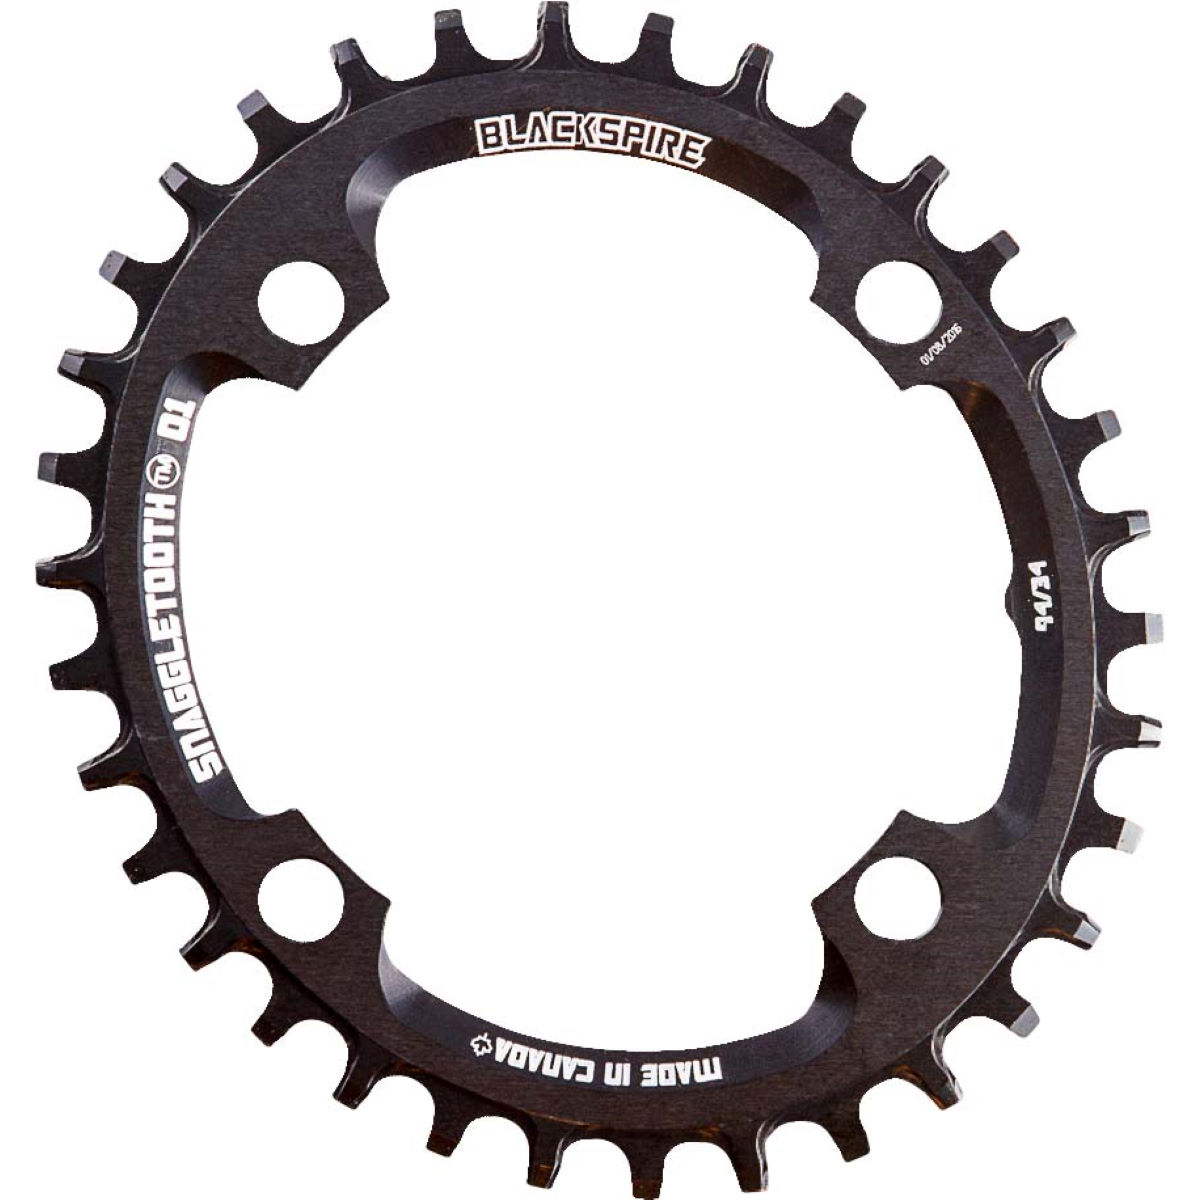 Blackspire Blackspire Snaggletooth Narrow Wide Oval Chainring X01   Chain Rings